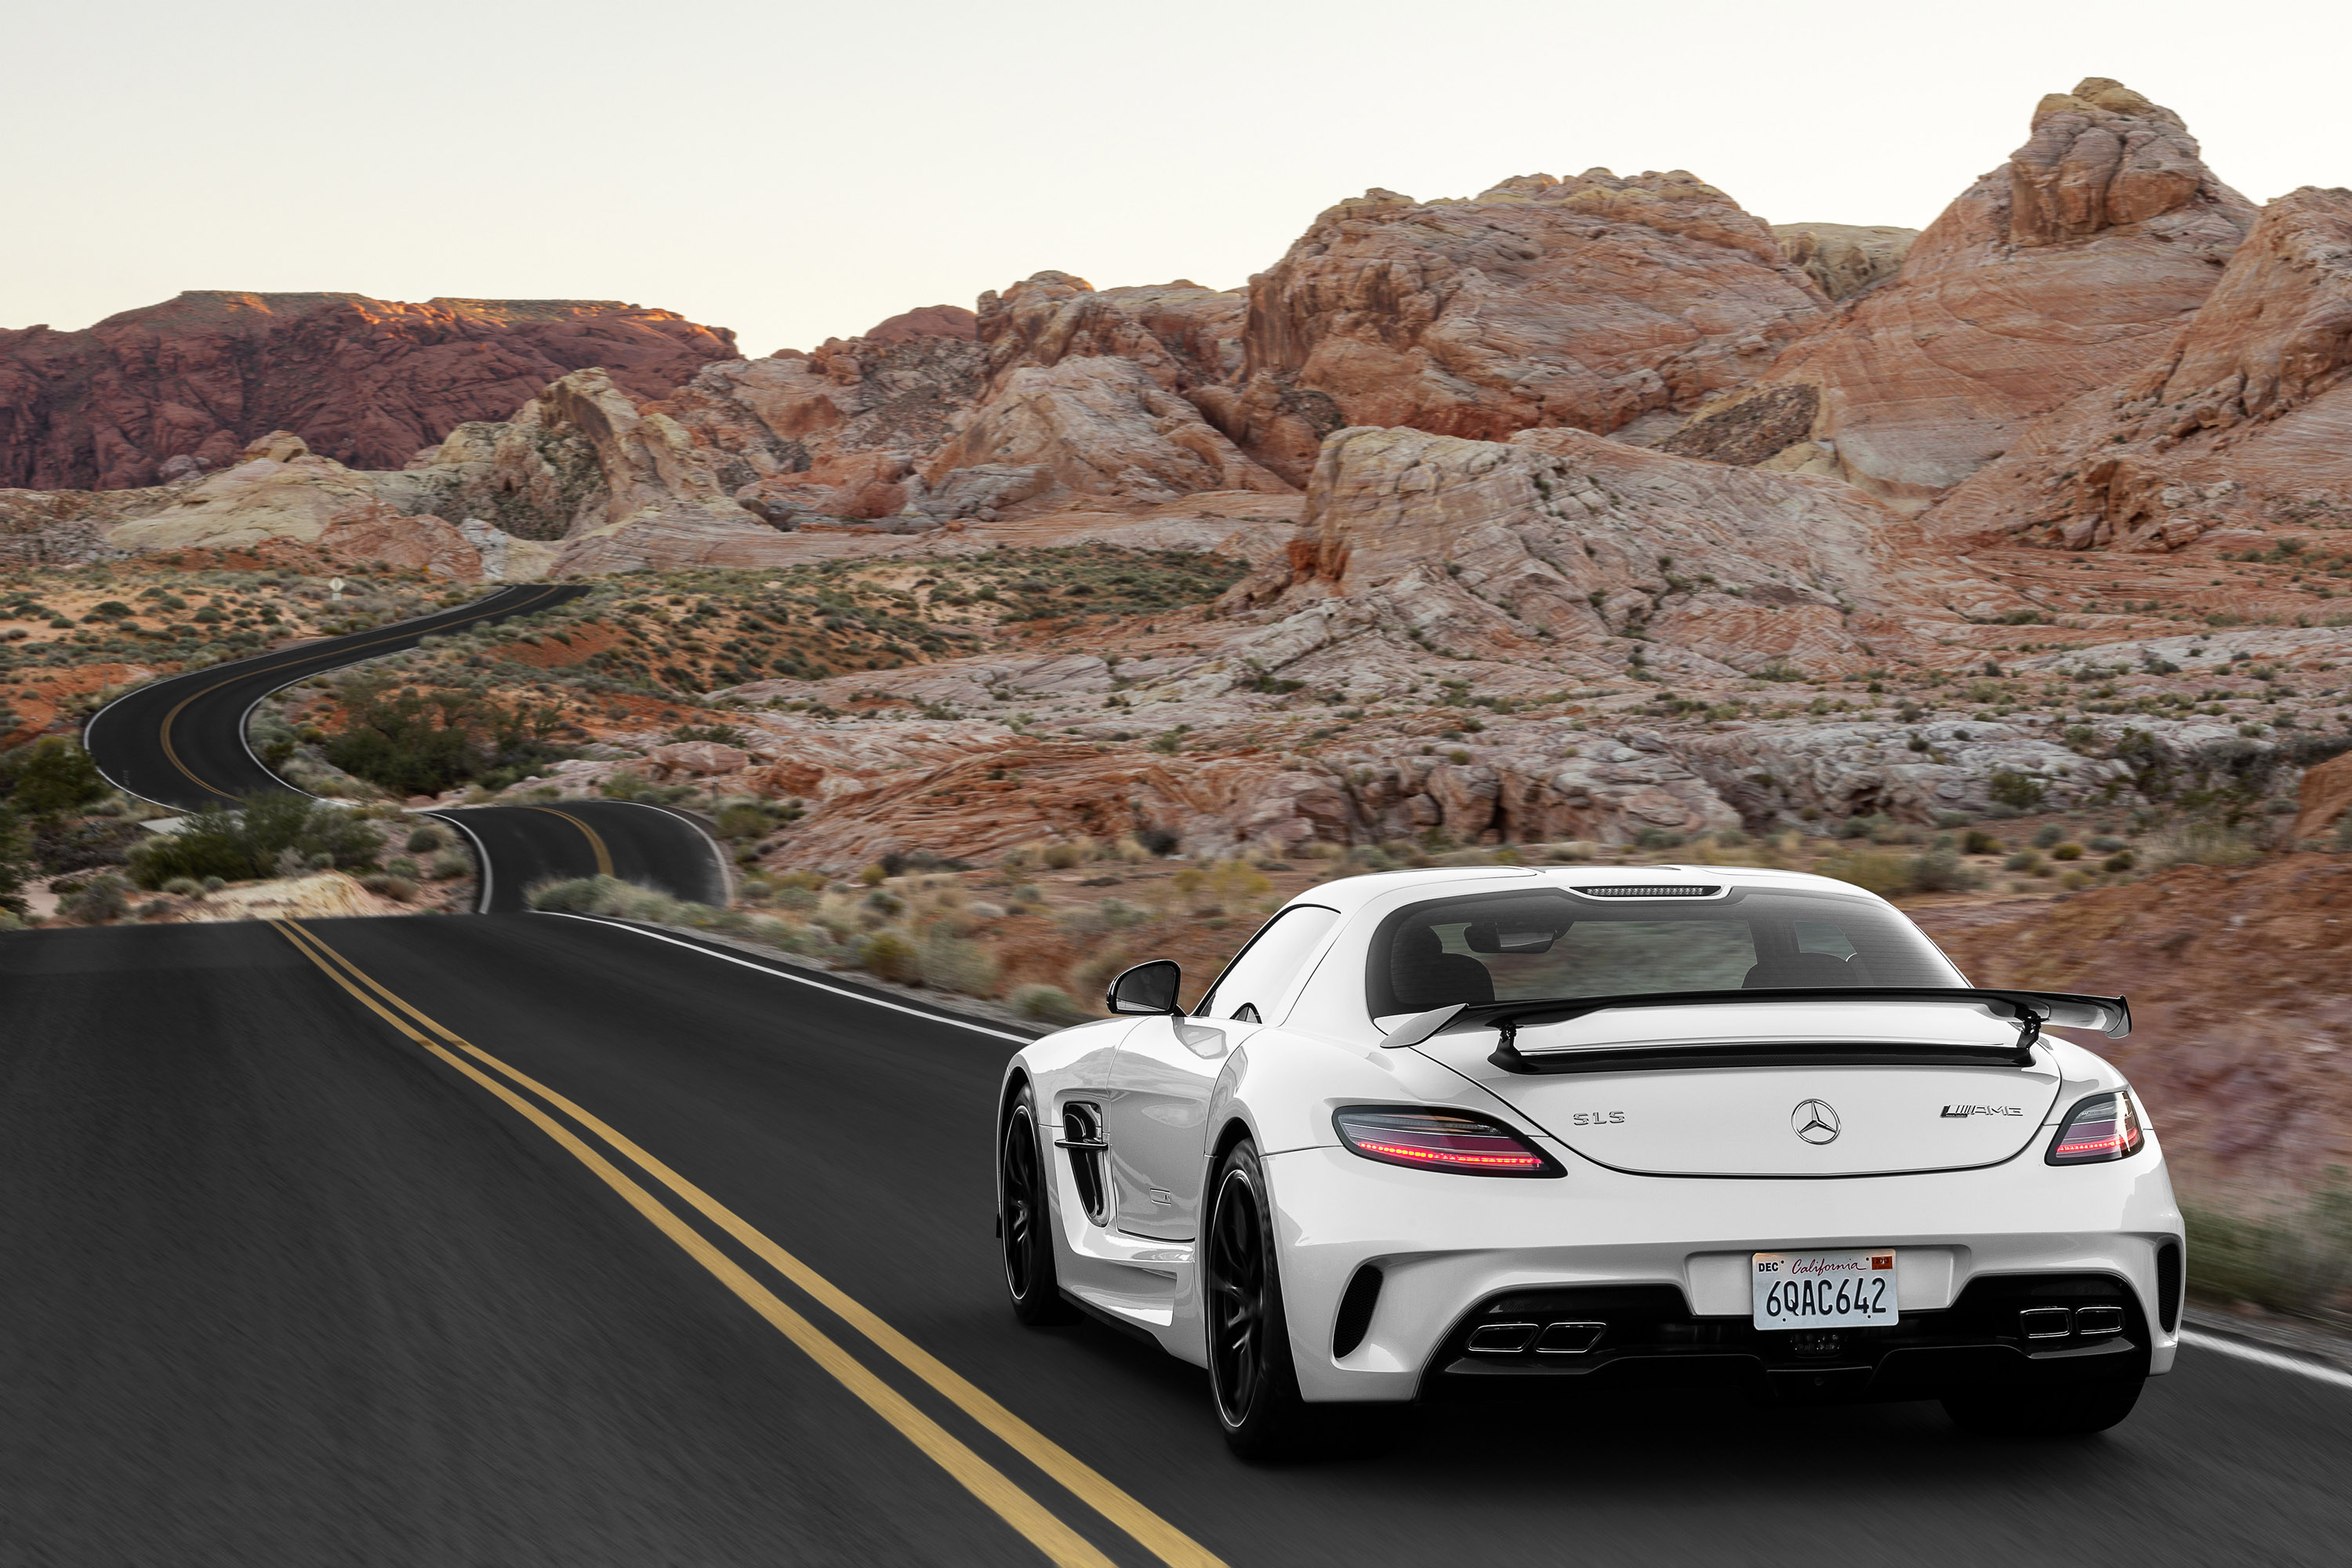 2014 Mercedes Benz SLS AMG Coupe Black Series, .